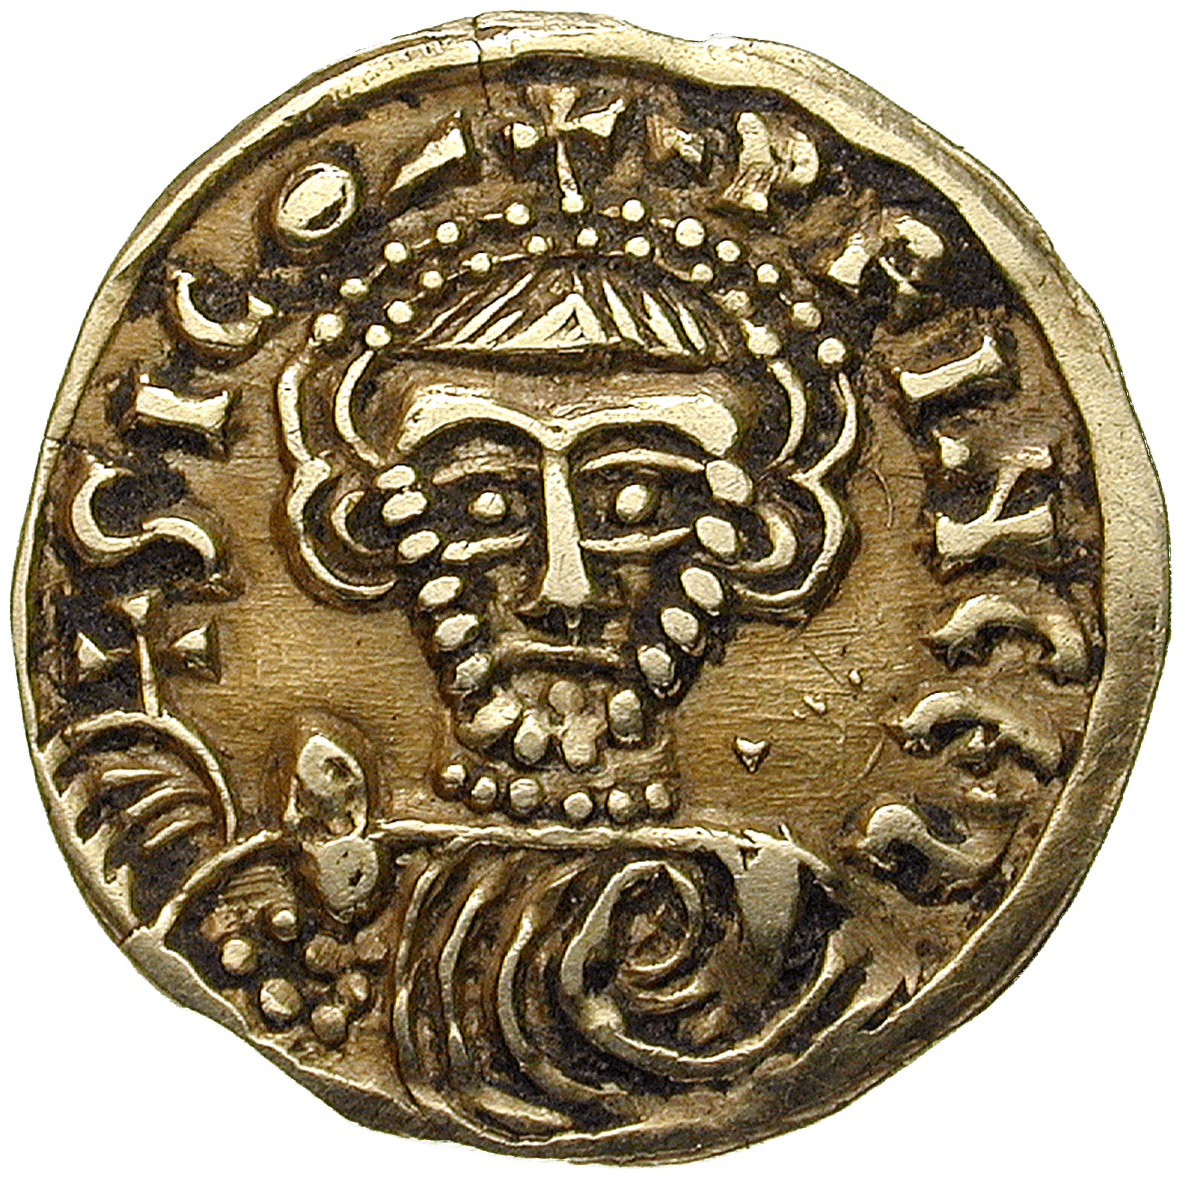 Kingdom of the Lombards, Duchy of Benevento, Sico, Tremissis (obverse)